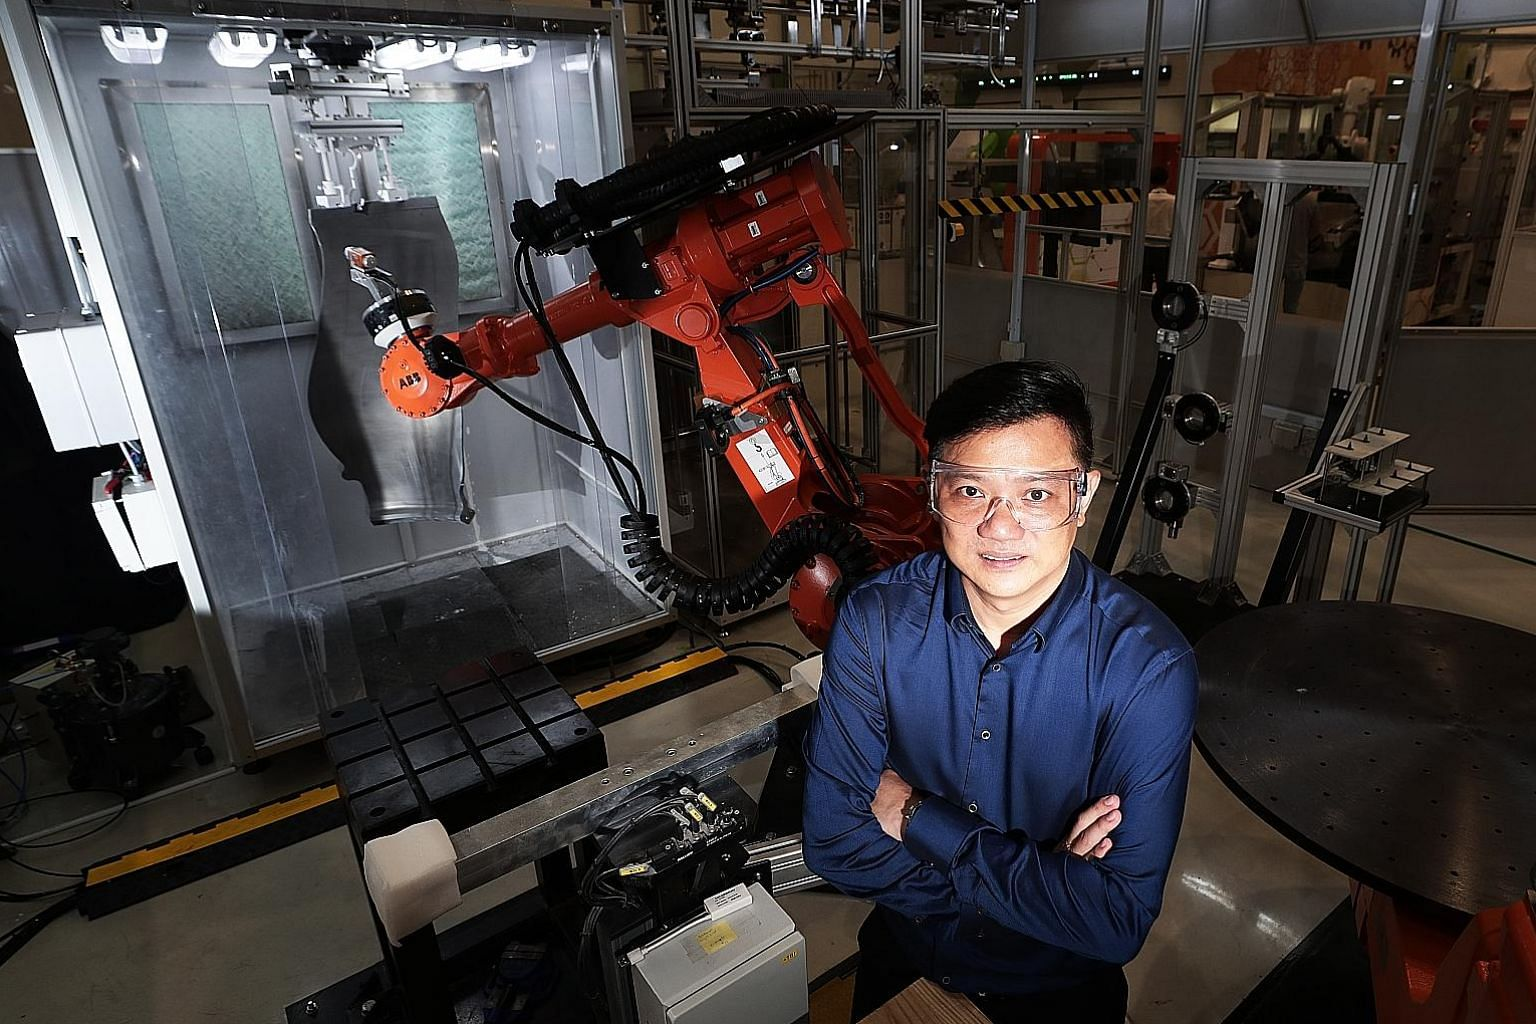 Mr Desmond Nyo, manager at KA Industrial Engineering, with a robot that automates spraying protective coatings on fan blades of aircraft engines. ST PHOTO: KELVIN CHNG